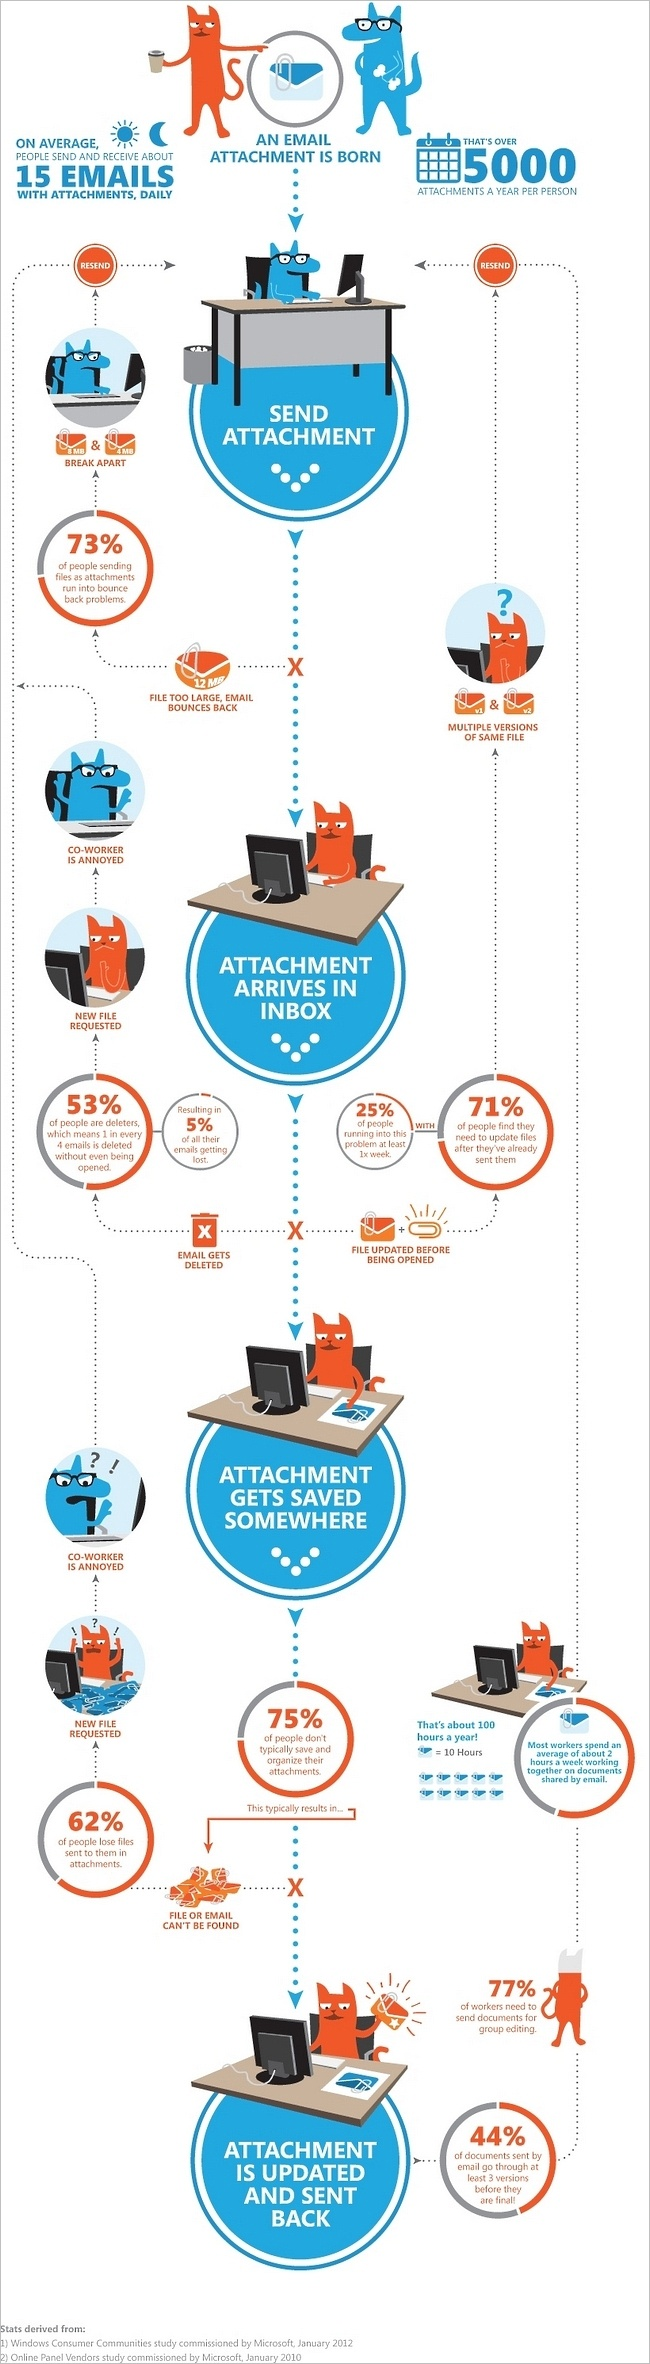 The Life of an Attachment #infographic